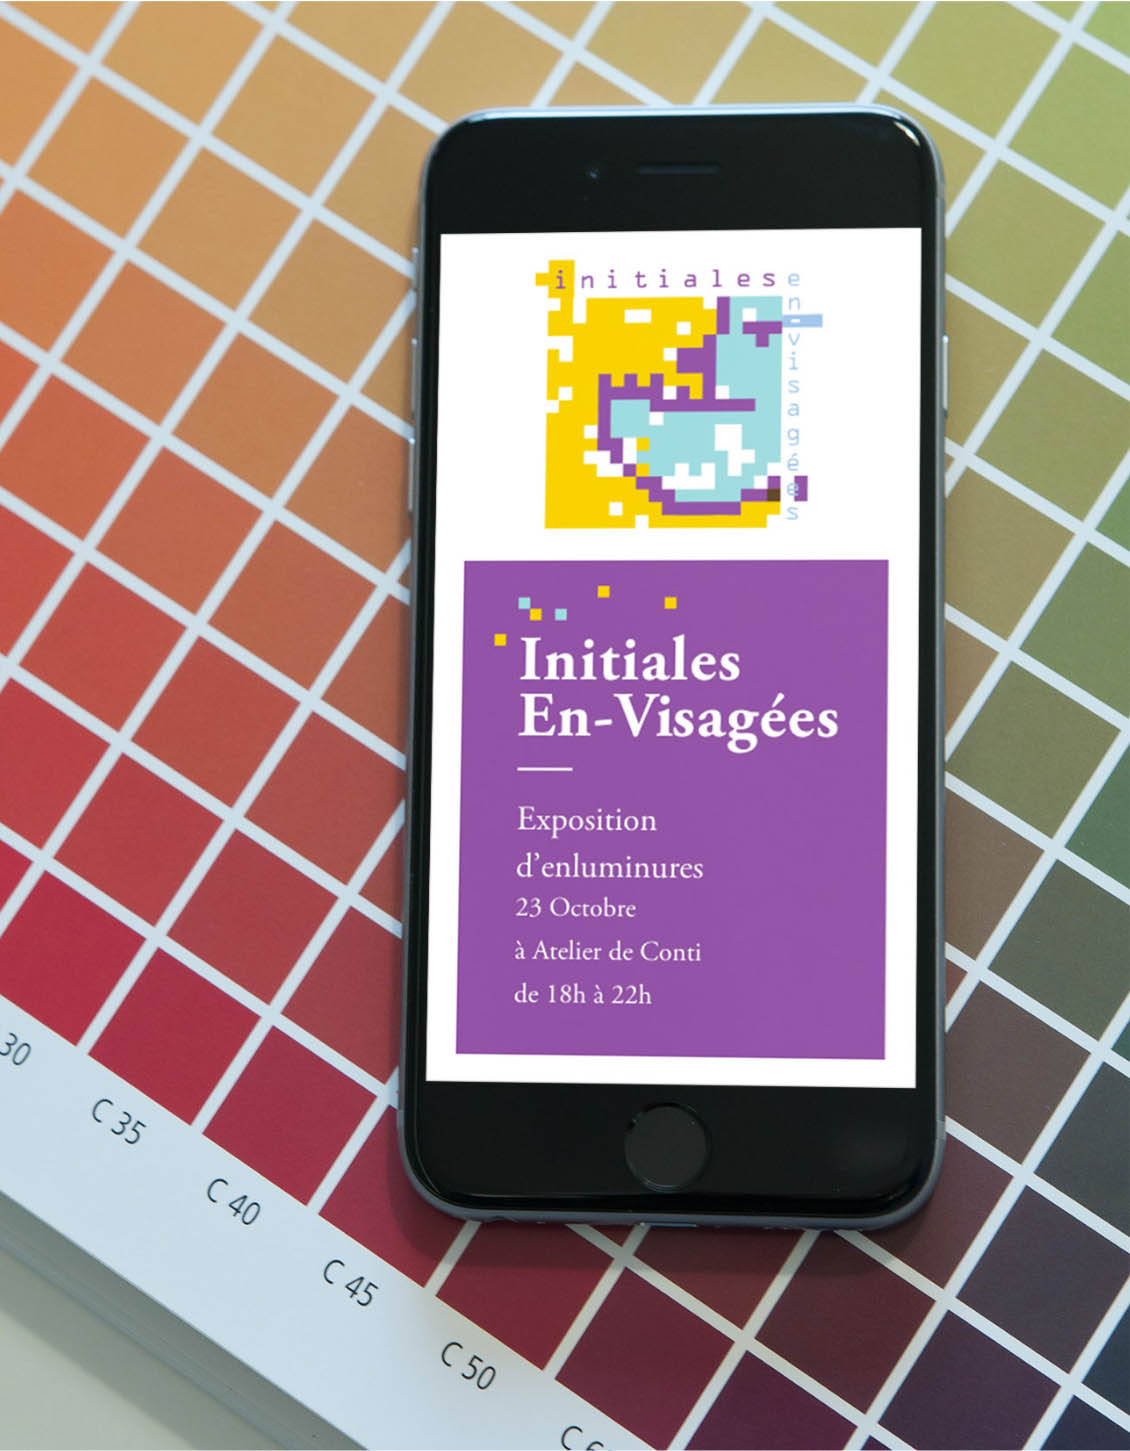 Version mobile du site initiales en-visagées